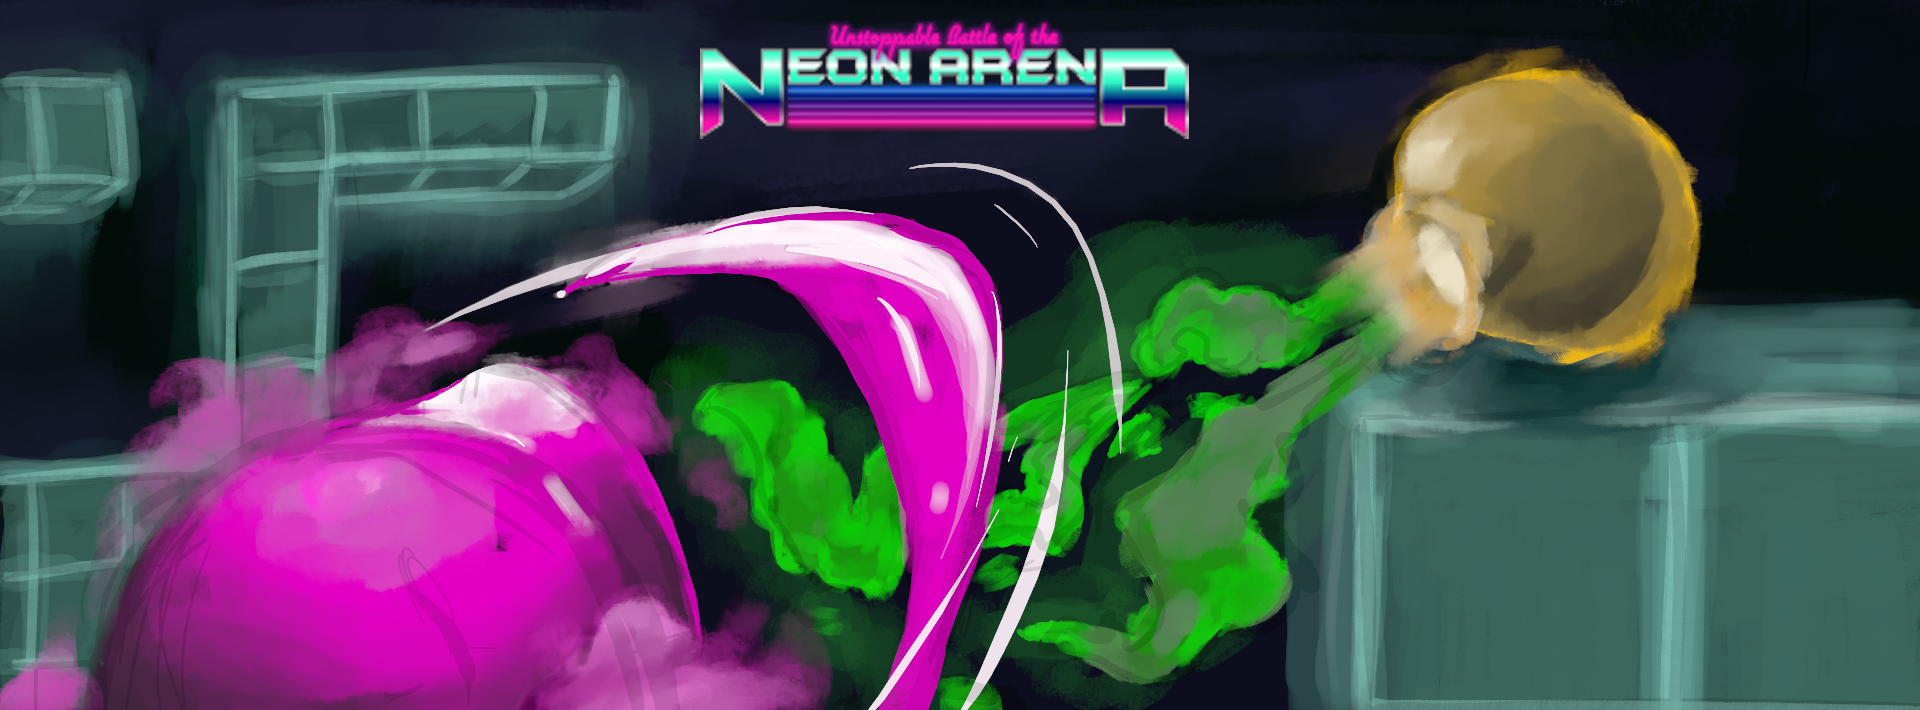 Unstoppable Battle of the Neon Arena